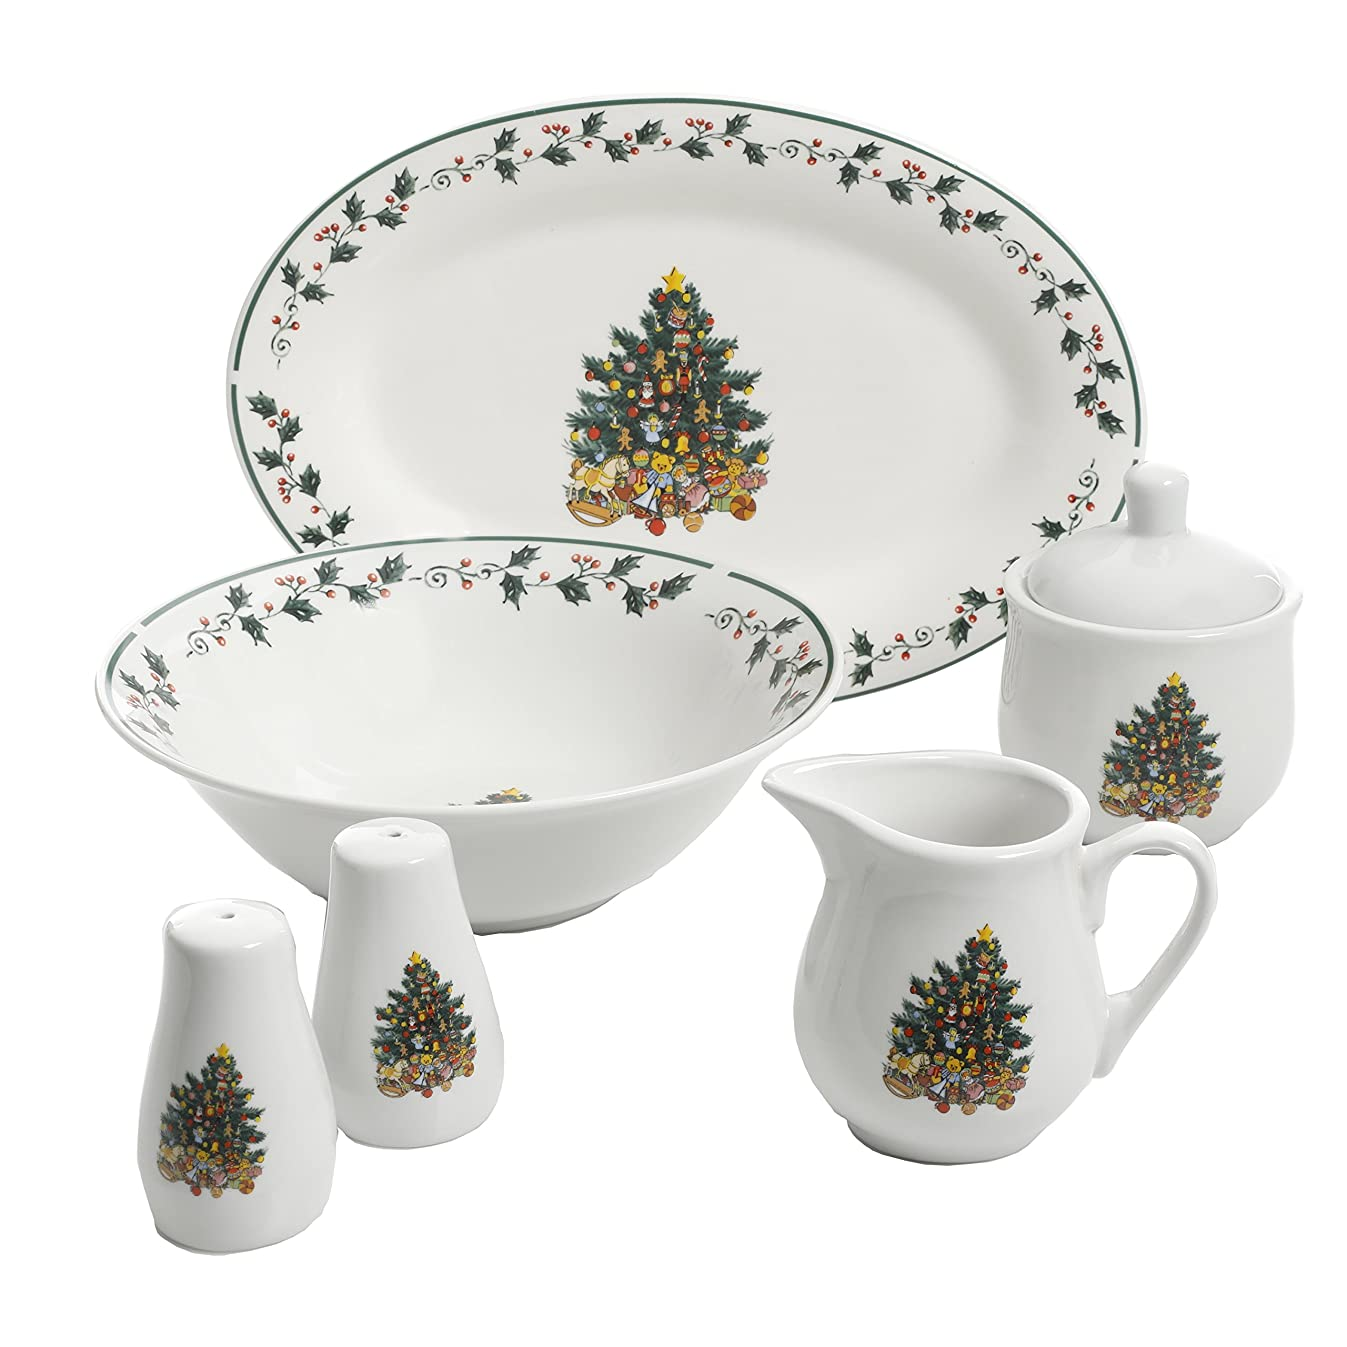 Gibson Home 99826.07R Christmas Tree Trimming, 7 PC Serving Set, Holiday